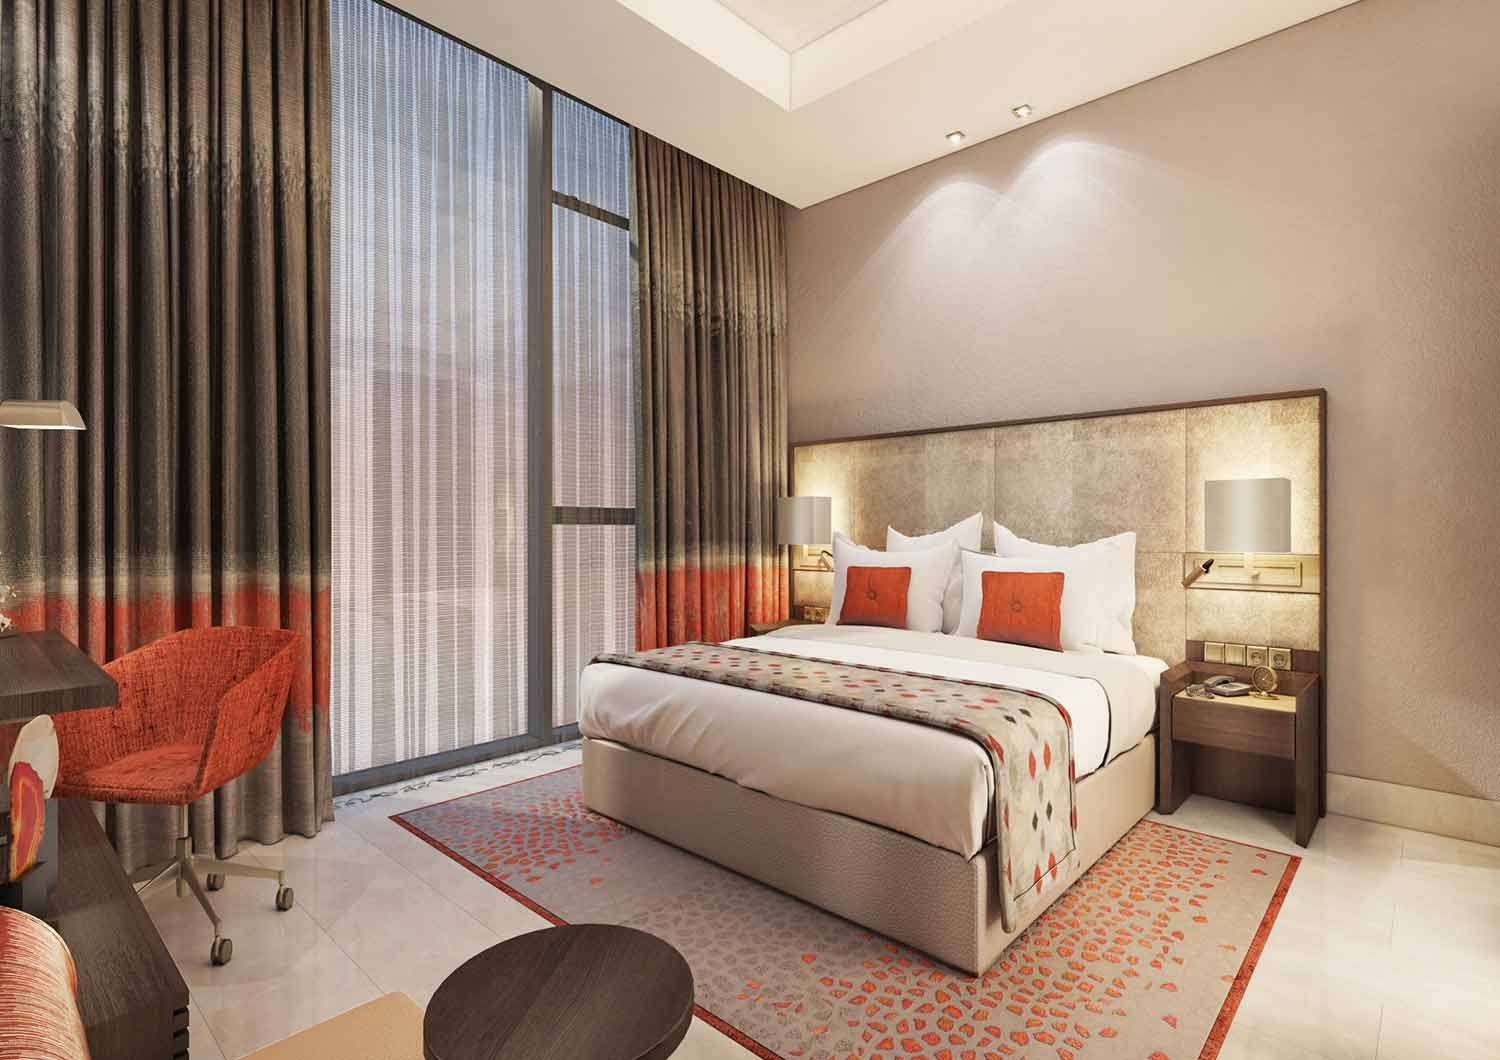 Budget hotel design how to change common perceptions for Decor hotel feira